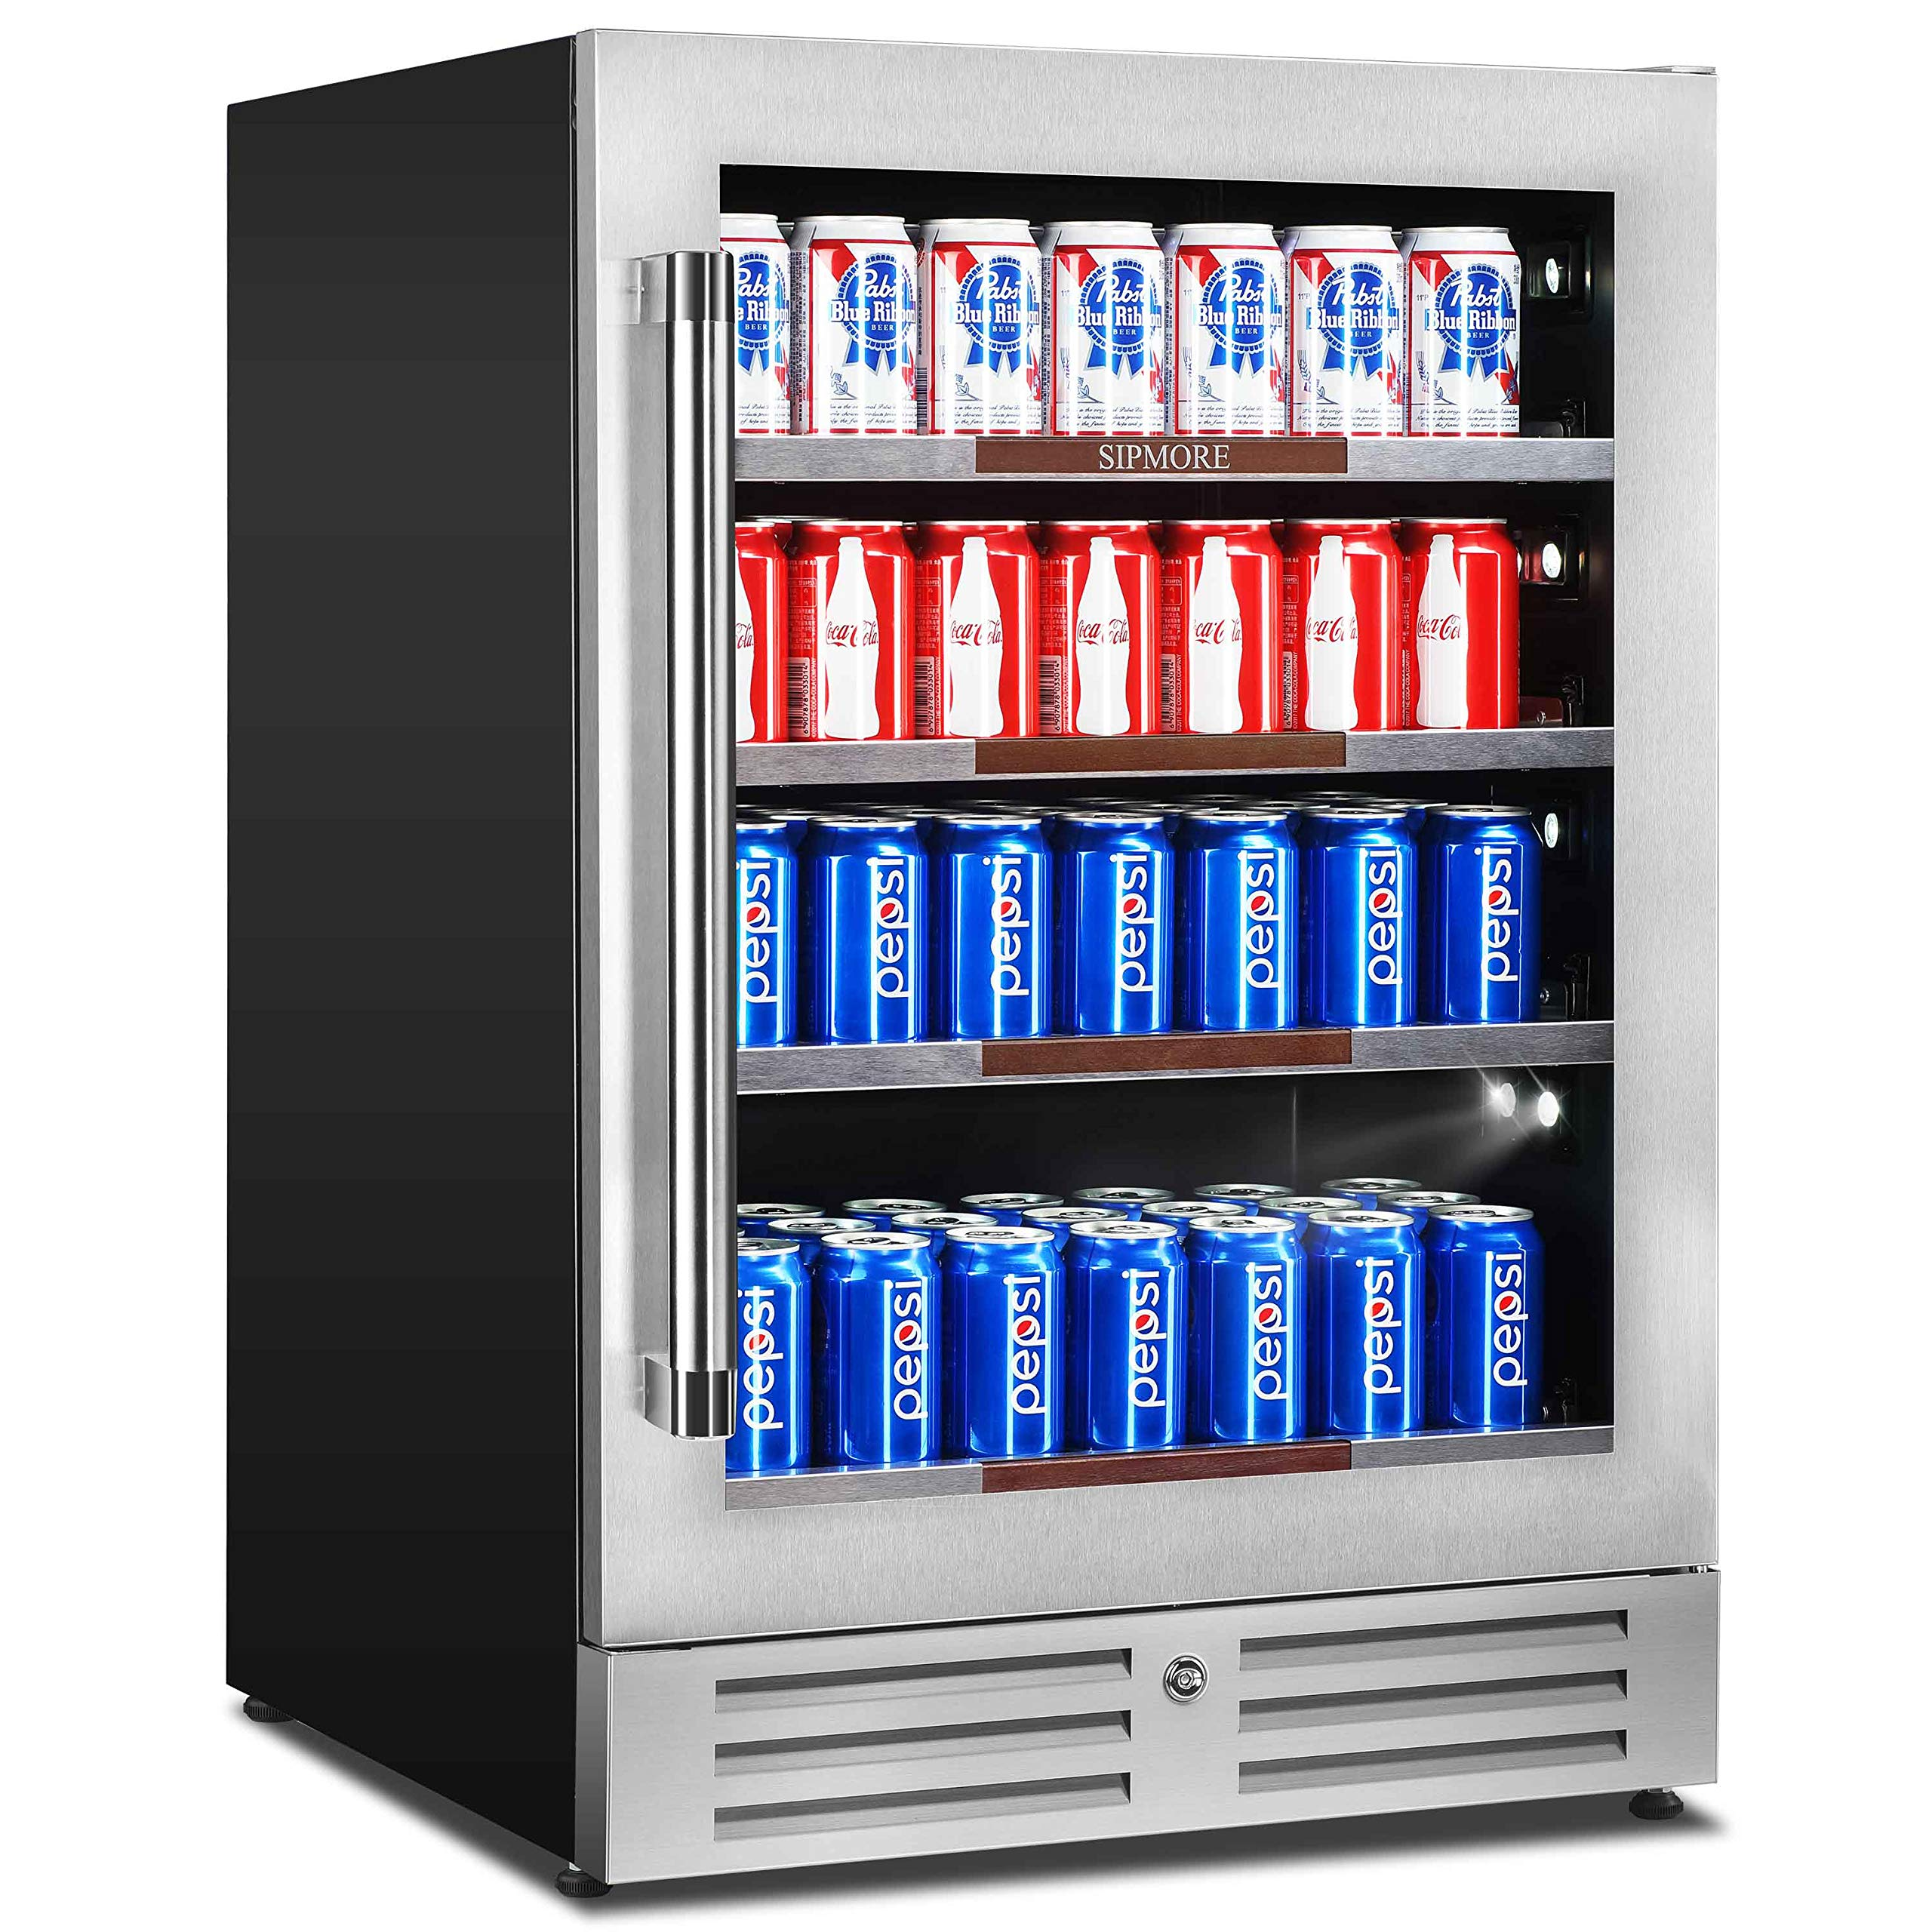 Sipmore Beverage Refrigerator and Cooler Glass Shelf 154 Can Built-in Fridge with Glass Door for Soda Beer, Powerful Drink Machine for Home Office or Bar with Stage Led Light and Smart Control System